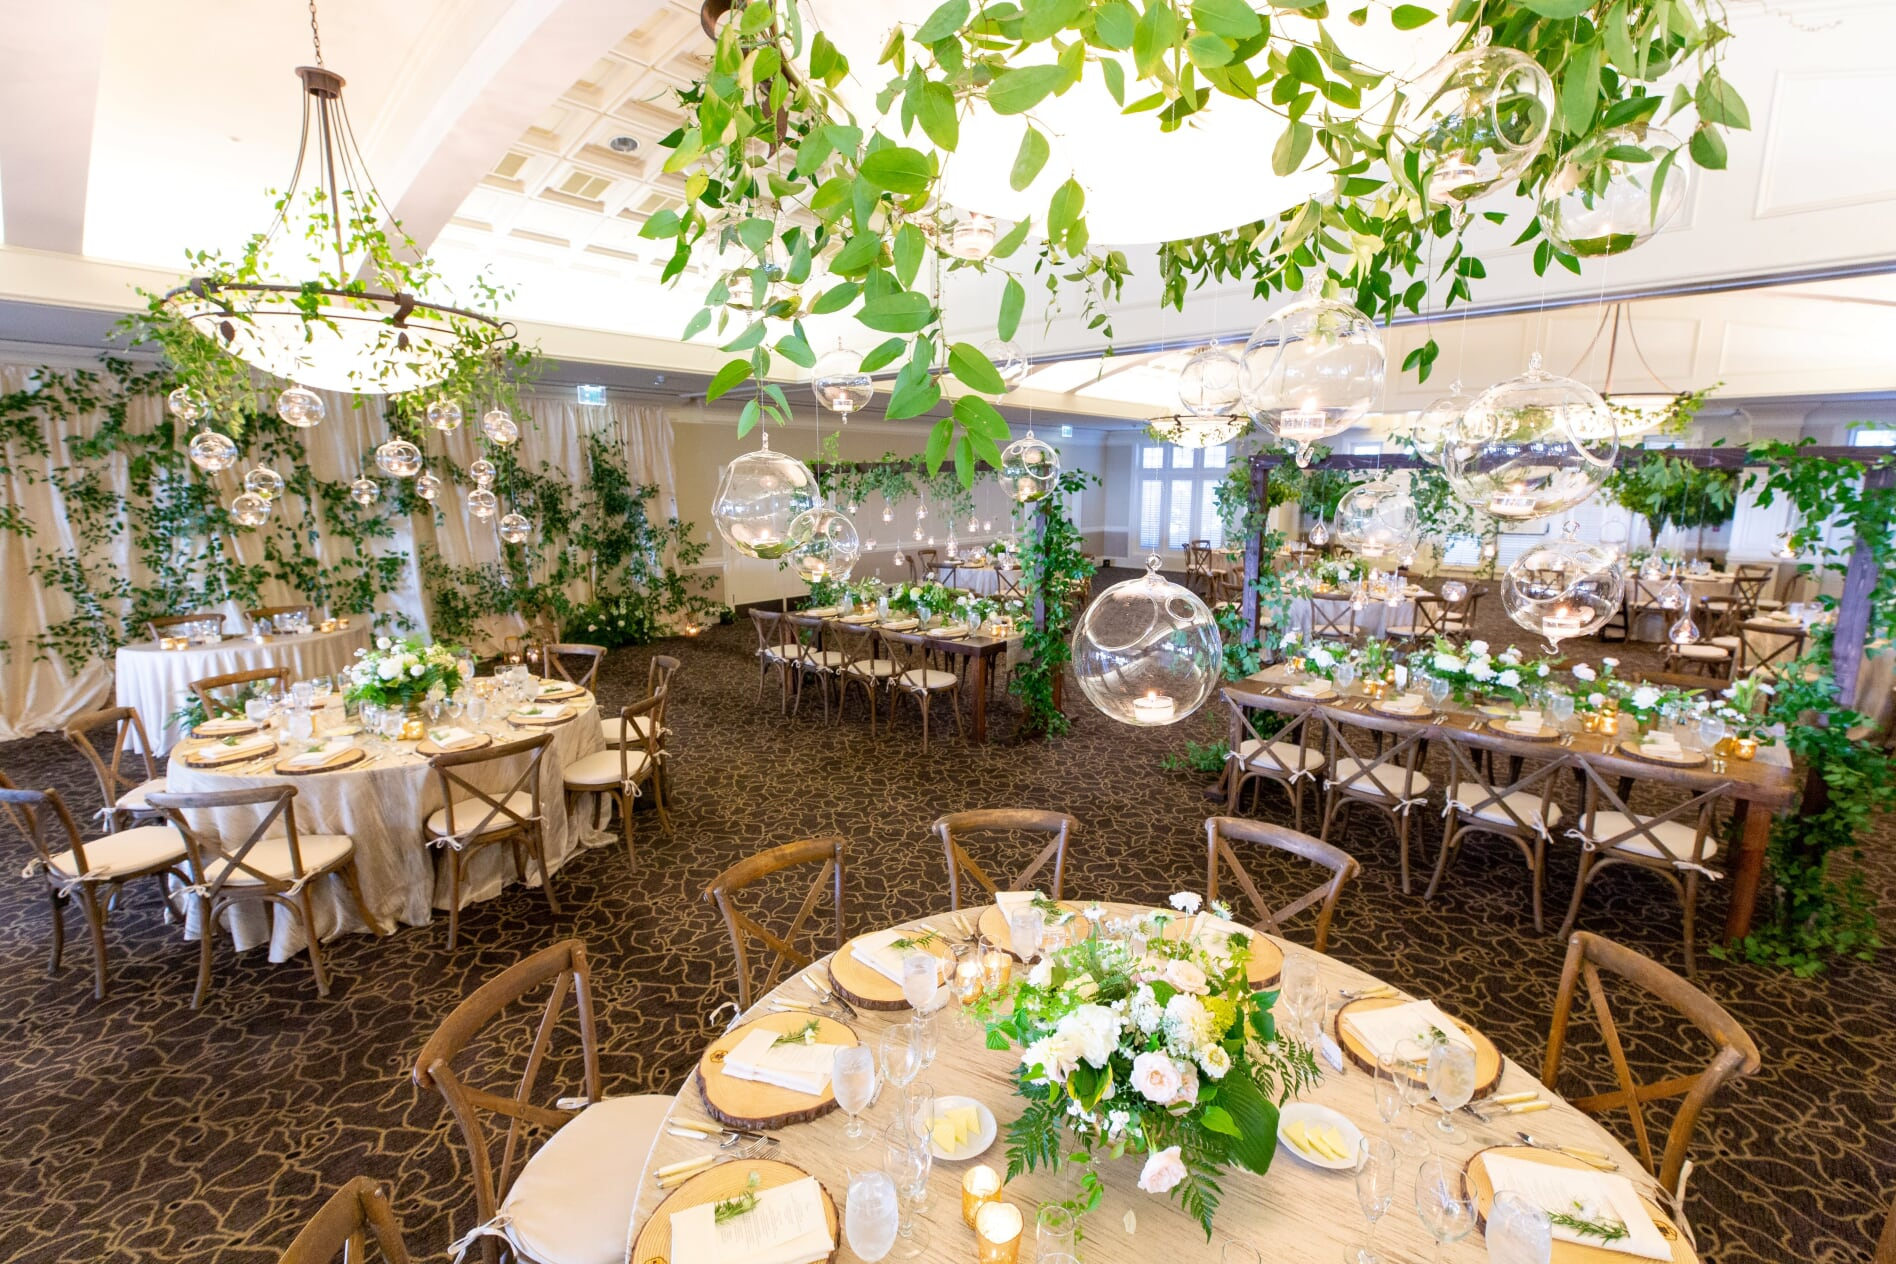 Midsommer night's dream wedding reception with hanging greenery and votives